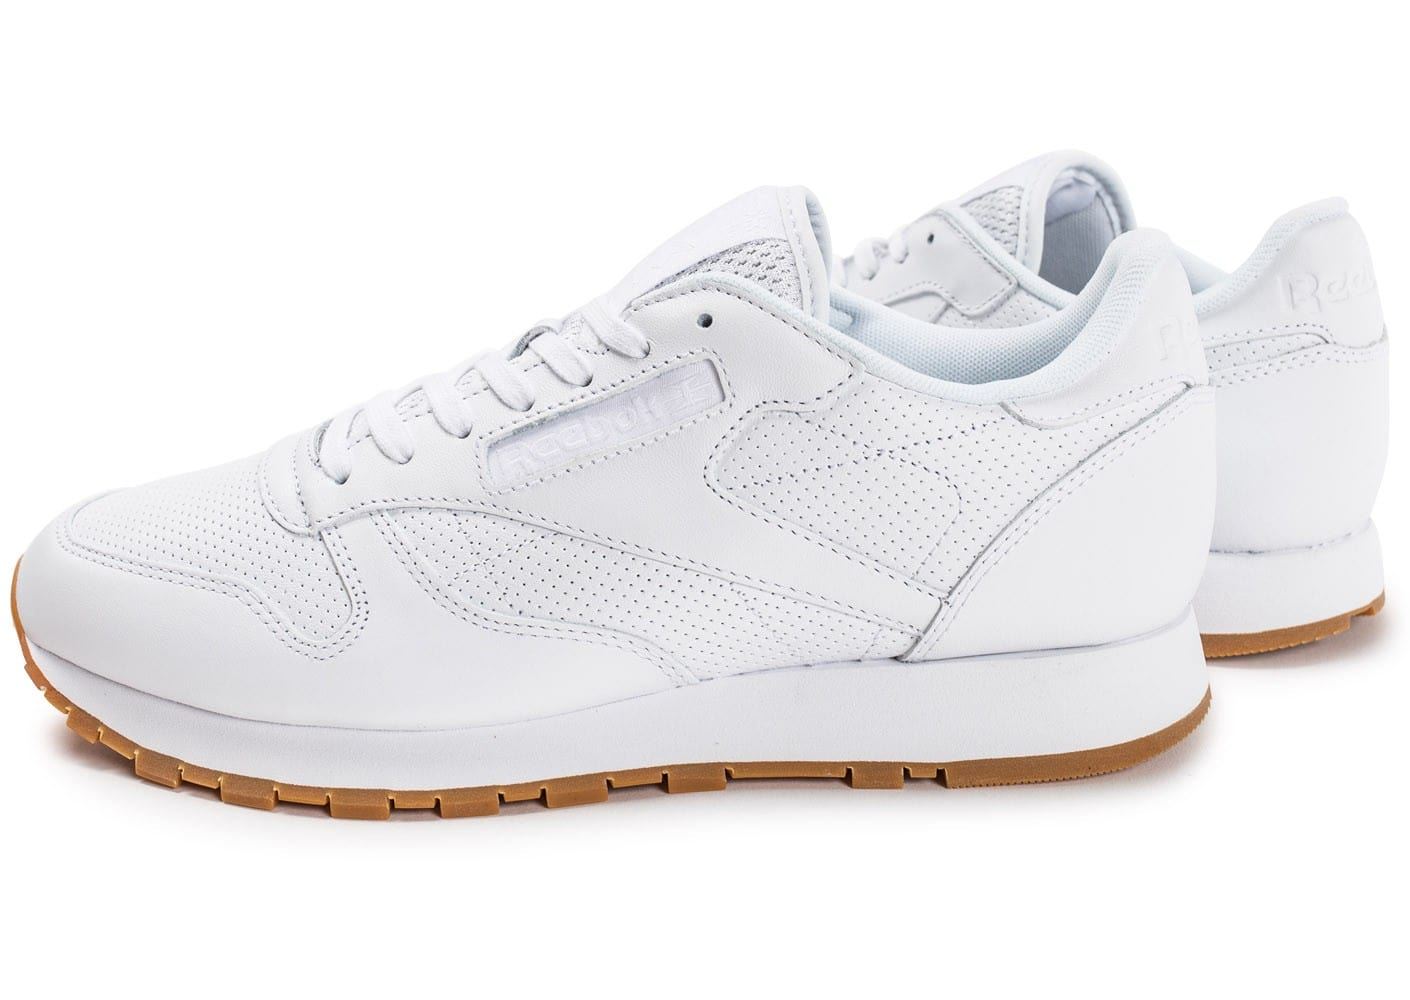 reebok classic leather pg blanche chaussures homme chausport. Black Bedroom Furniture Sets. Home Design Ideas